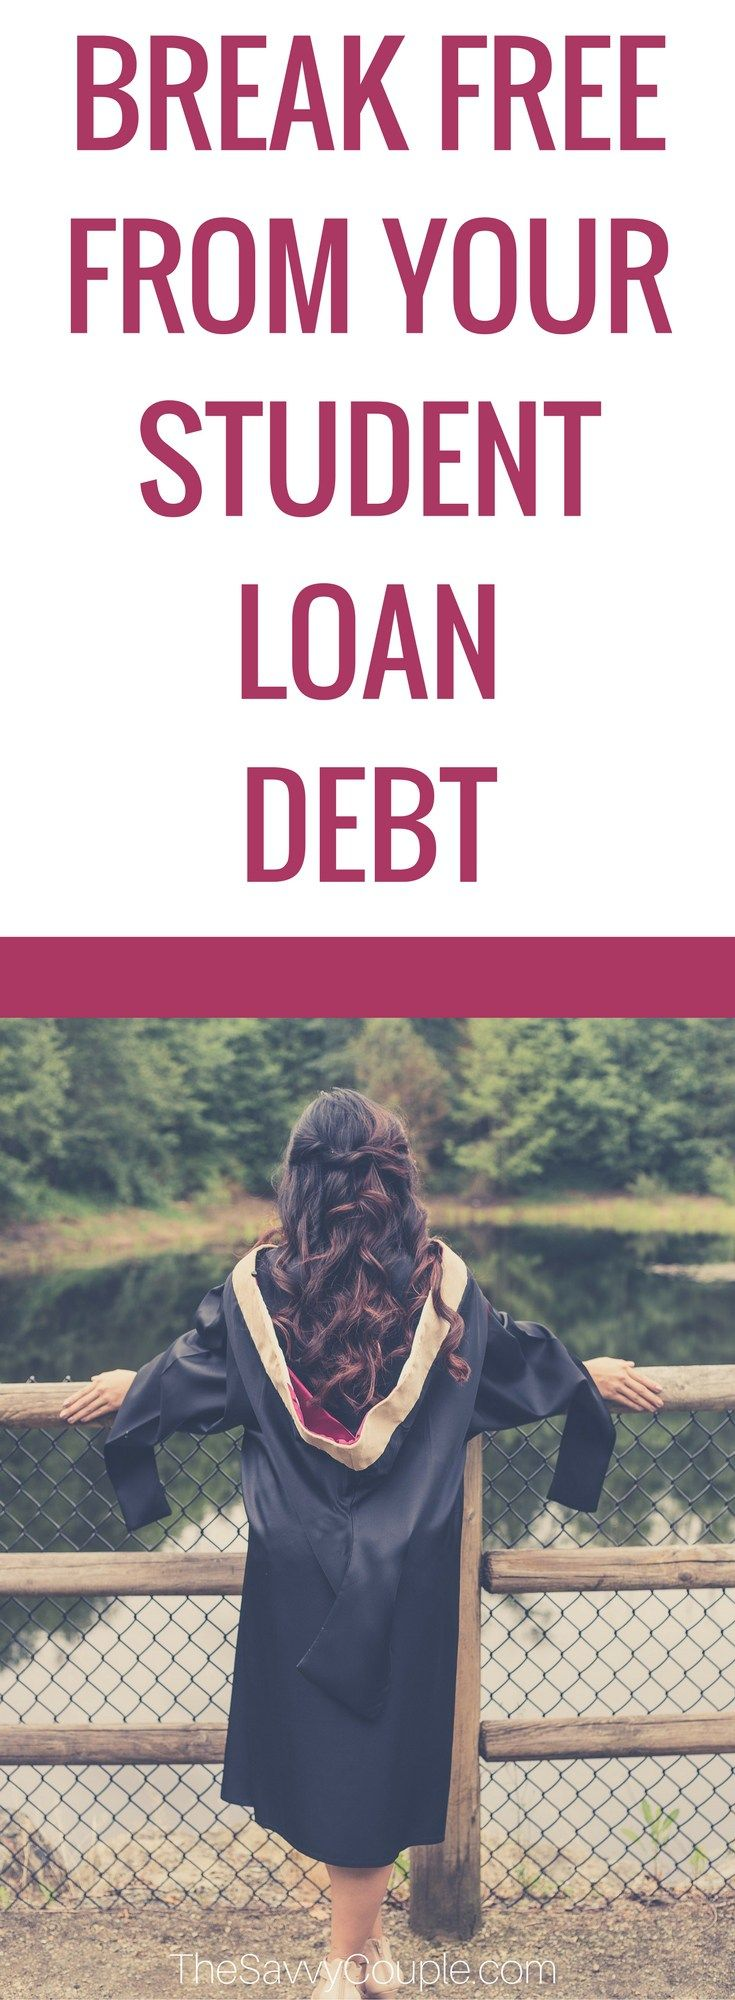 Struggling to pay your student loans? You're not alone. Celebrate the milestones in paying off your student loan debt. Every little bit counts! Take control over your student loan payments. Student loan debt does not need to consume your budget. Student Loan Debt   Student Loans   Refinance Student Loans   Loan Forgiveness  